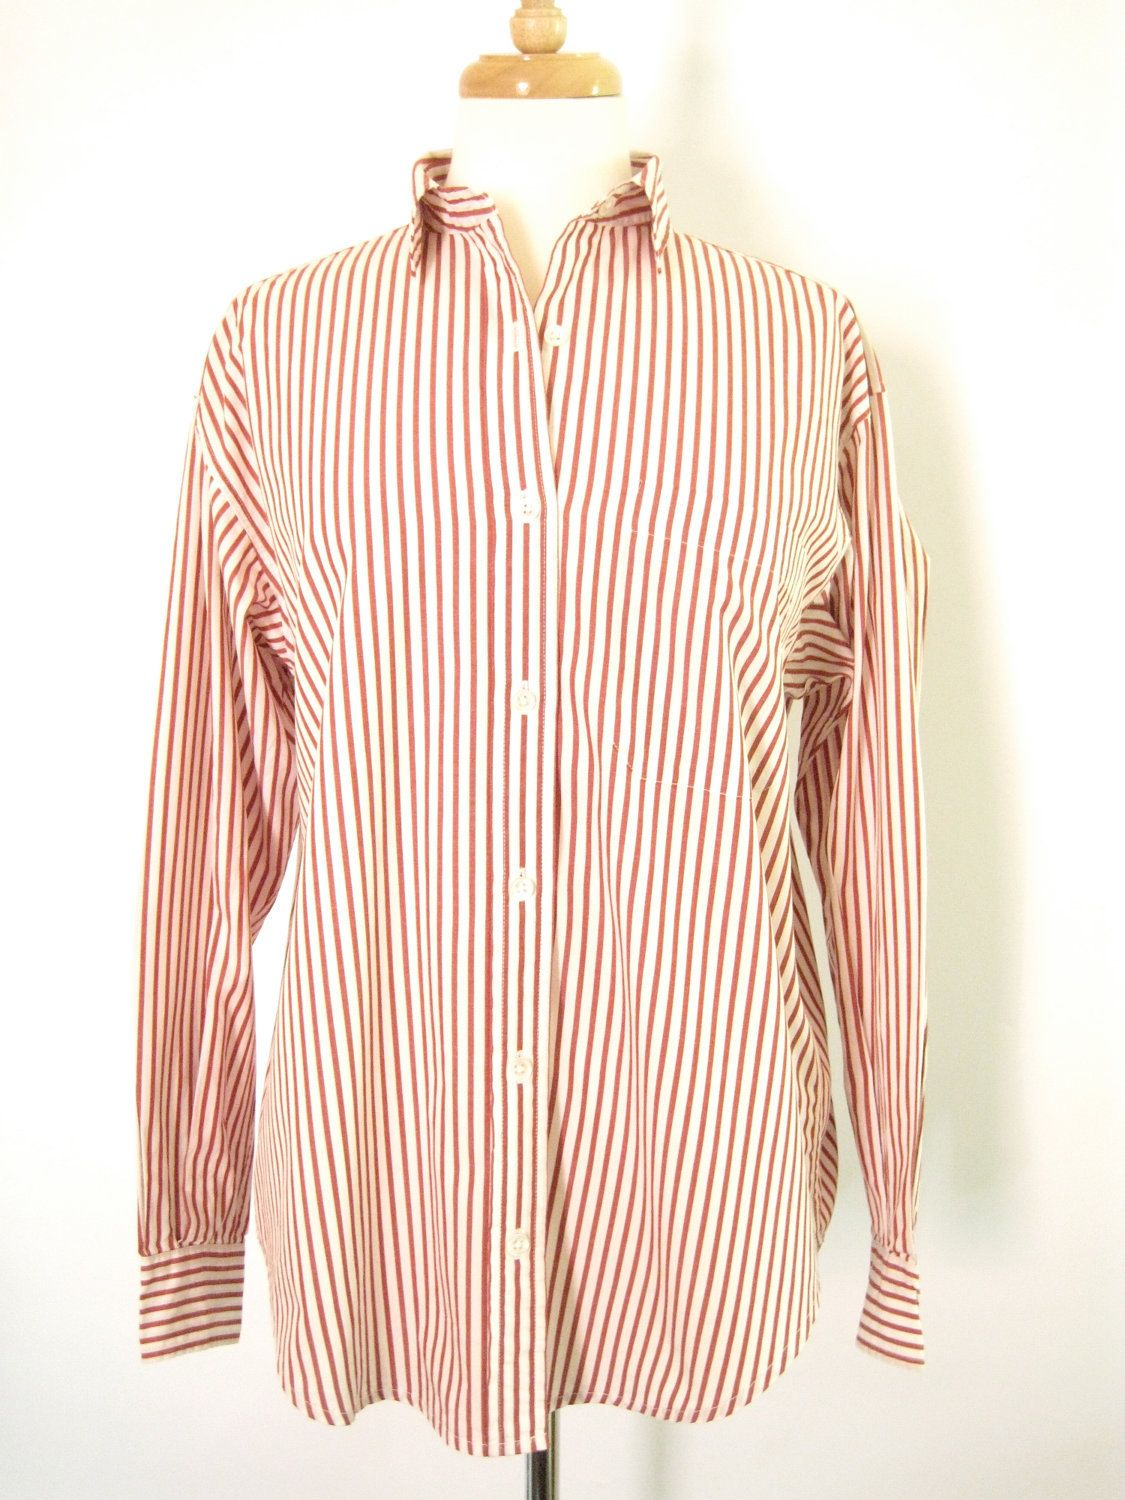 e58c160a0c3f5c Vintage Calvin Klein Red and White Striped Button Up Oxford Shirt. Size  Small. #fashion #tomboy #vintage